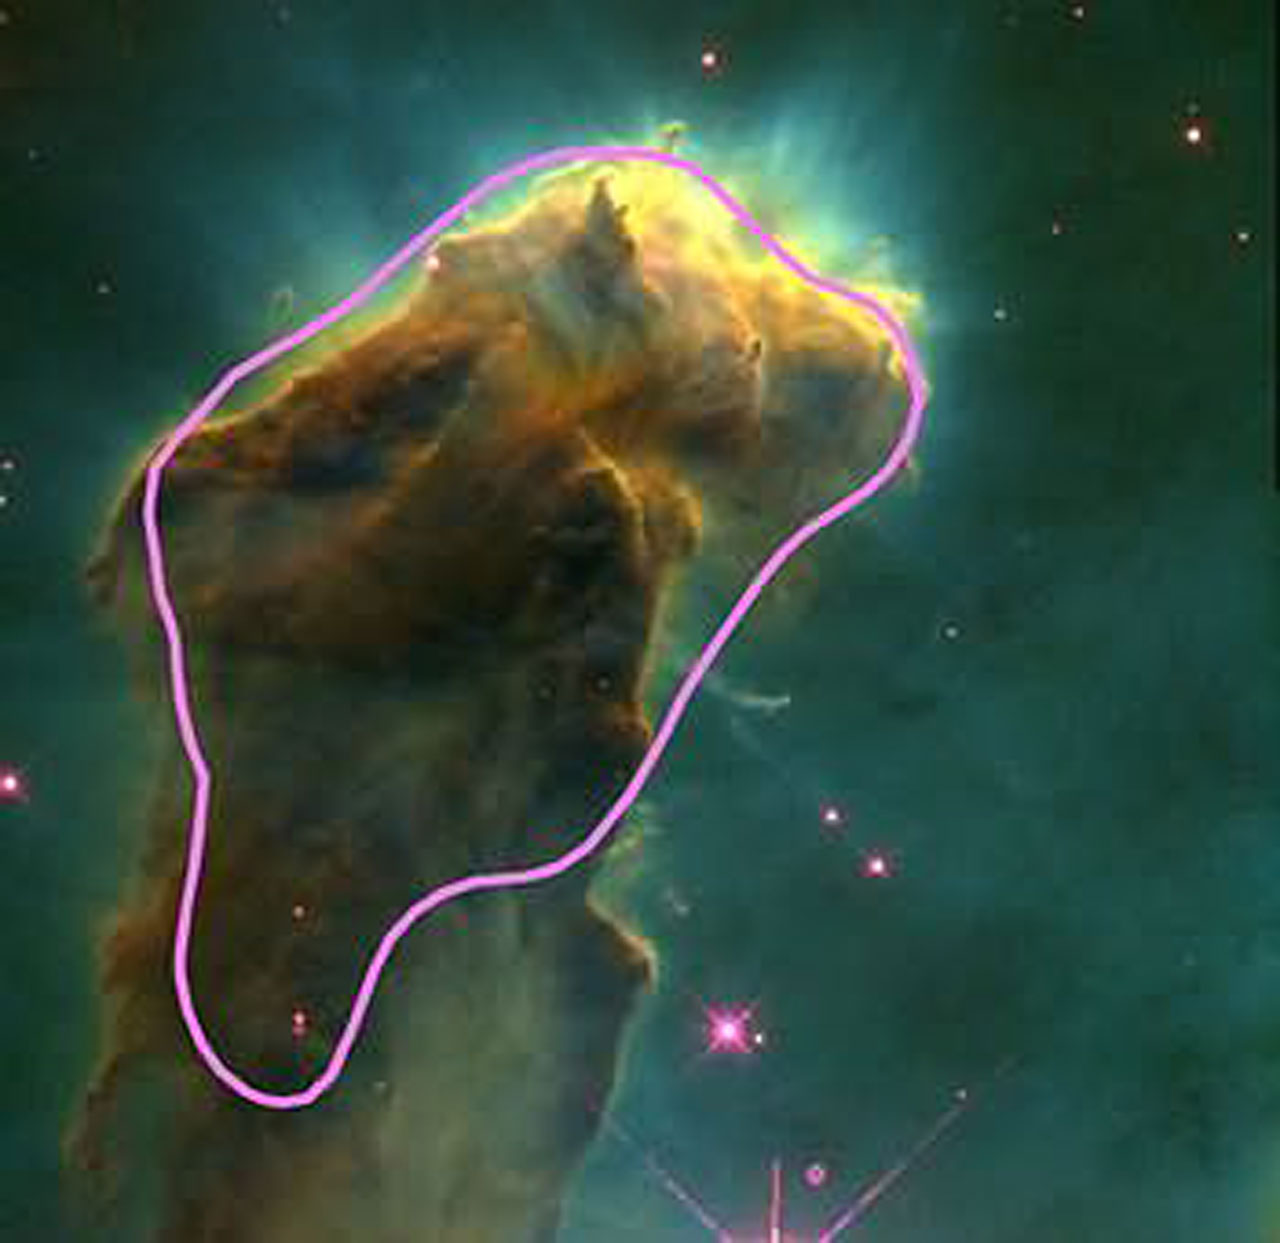 Eagle Nebula with a representation of a giant molecular cloud